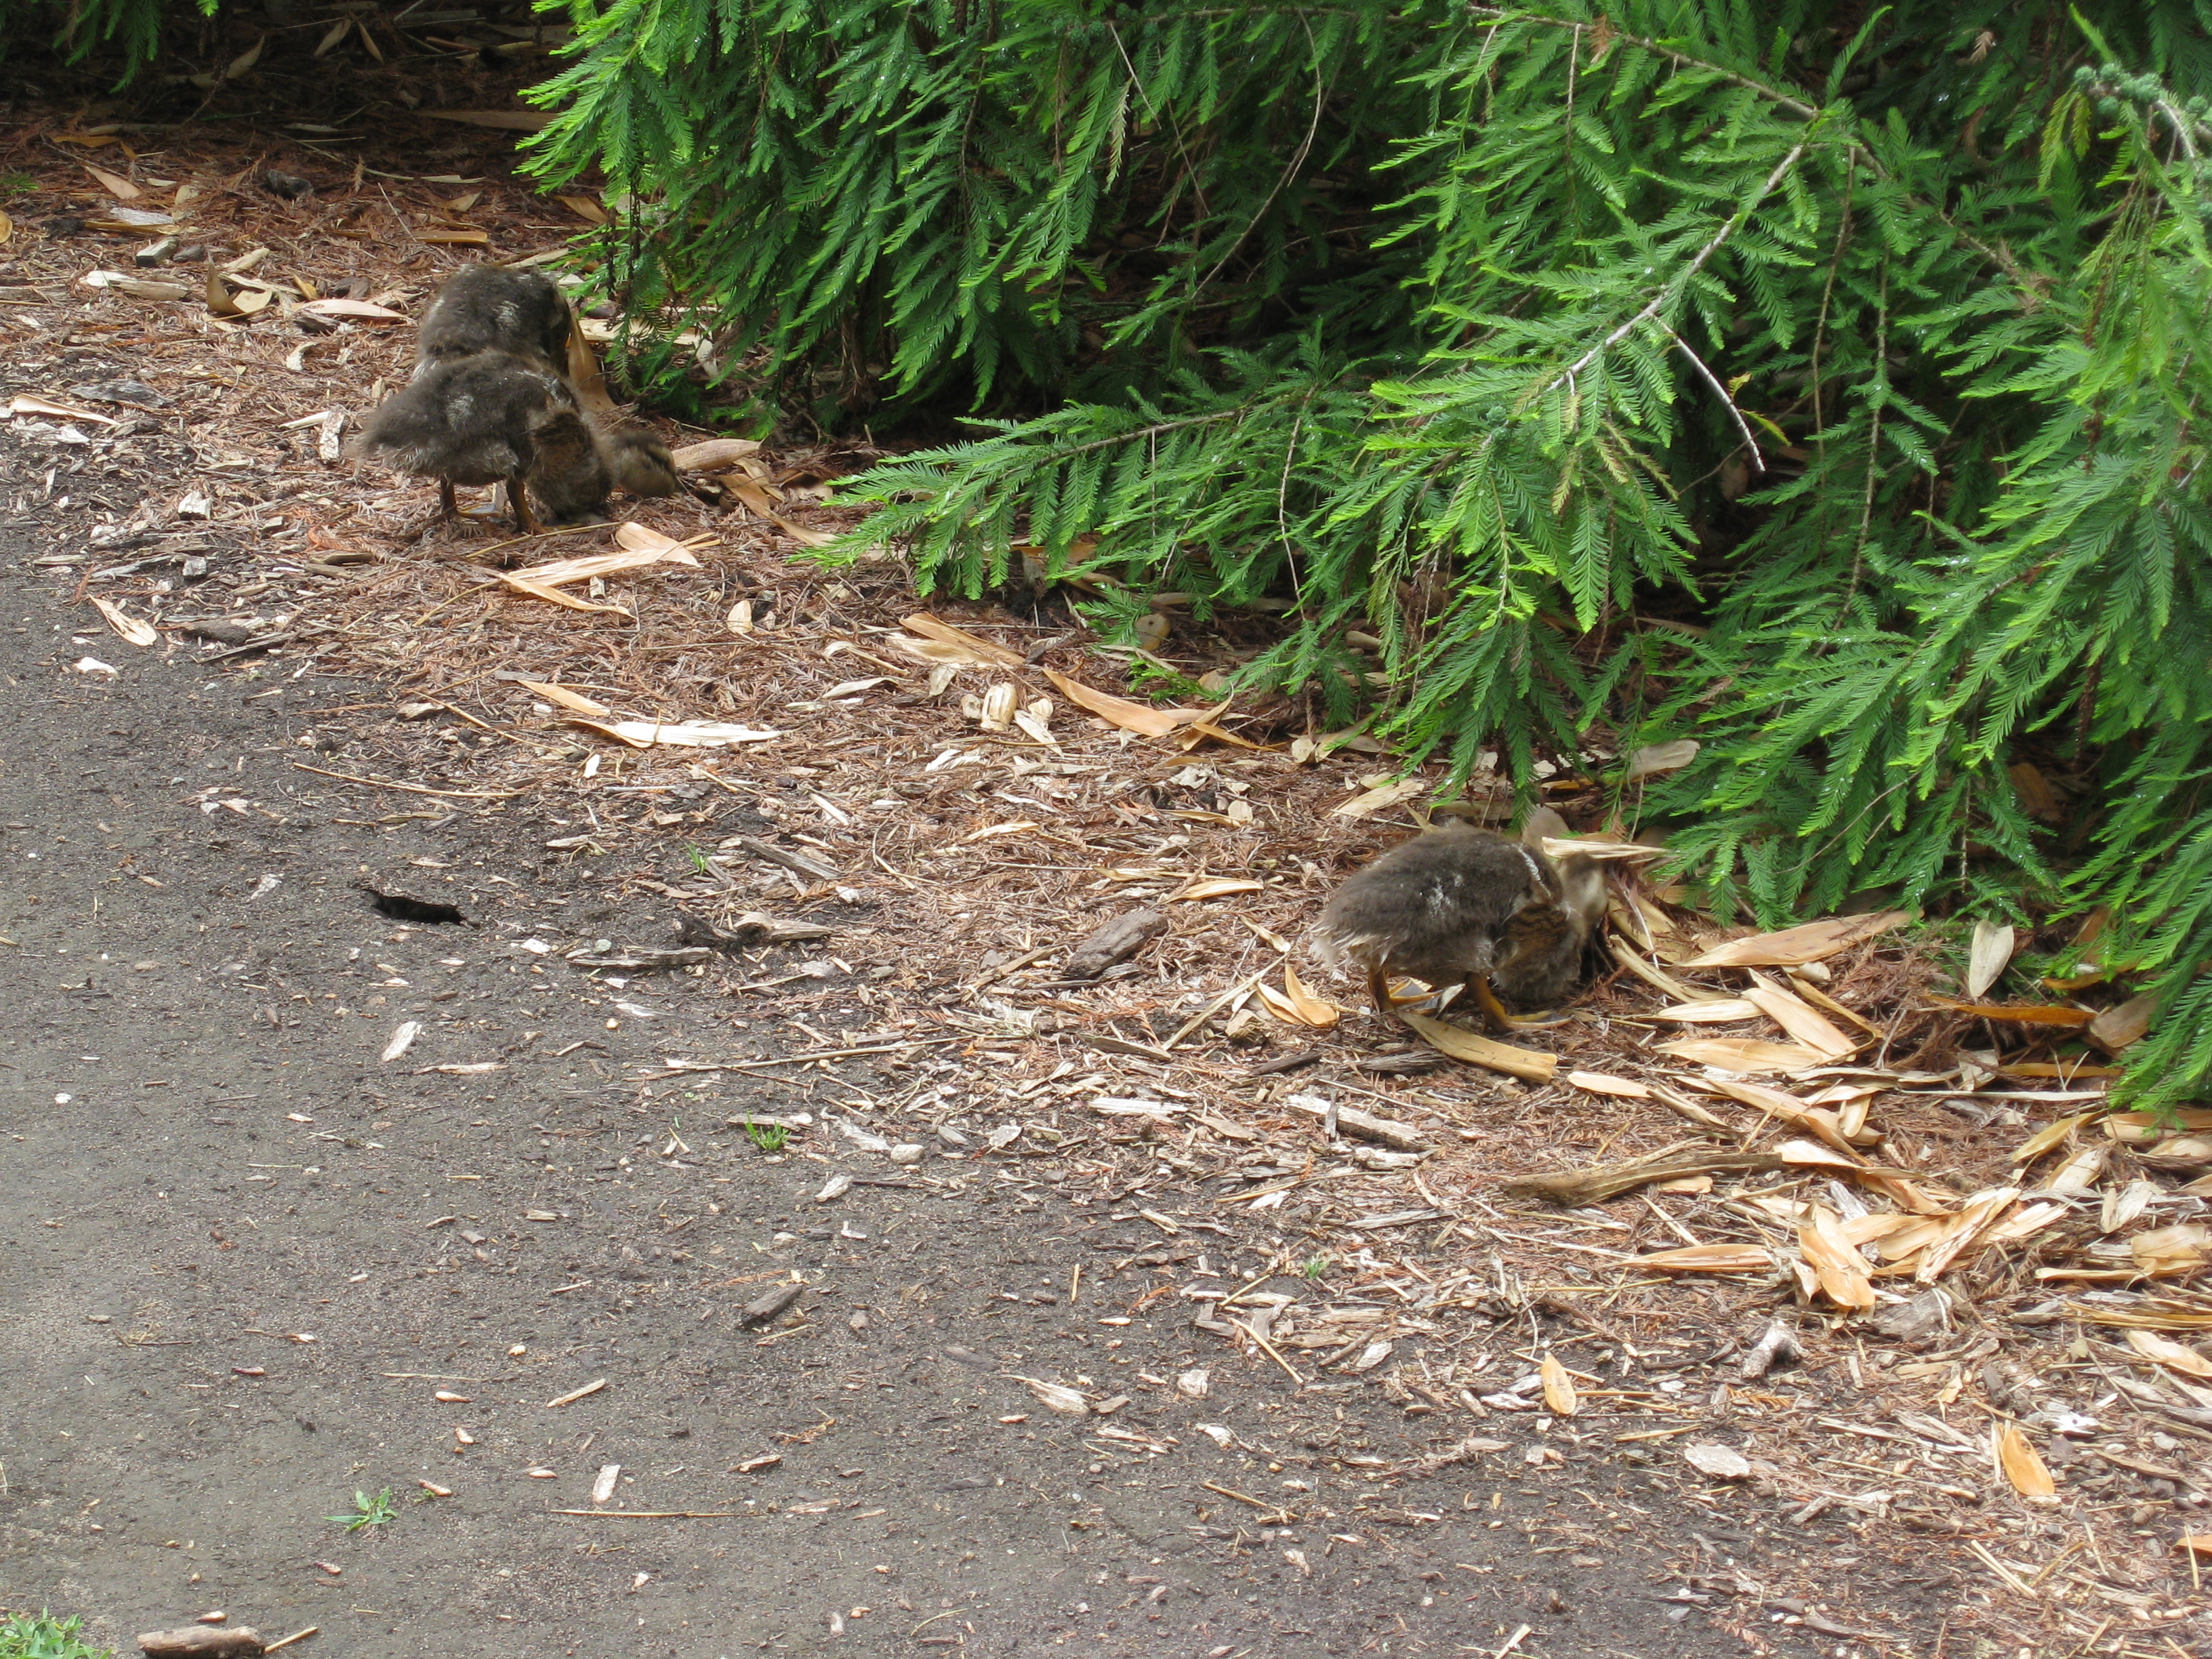 Baby ducks nestle into the mulch with Mom nearby.